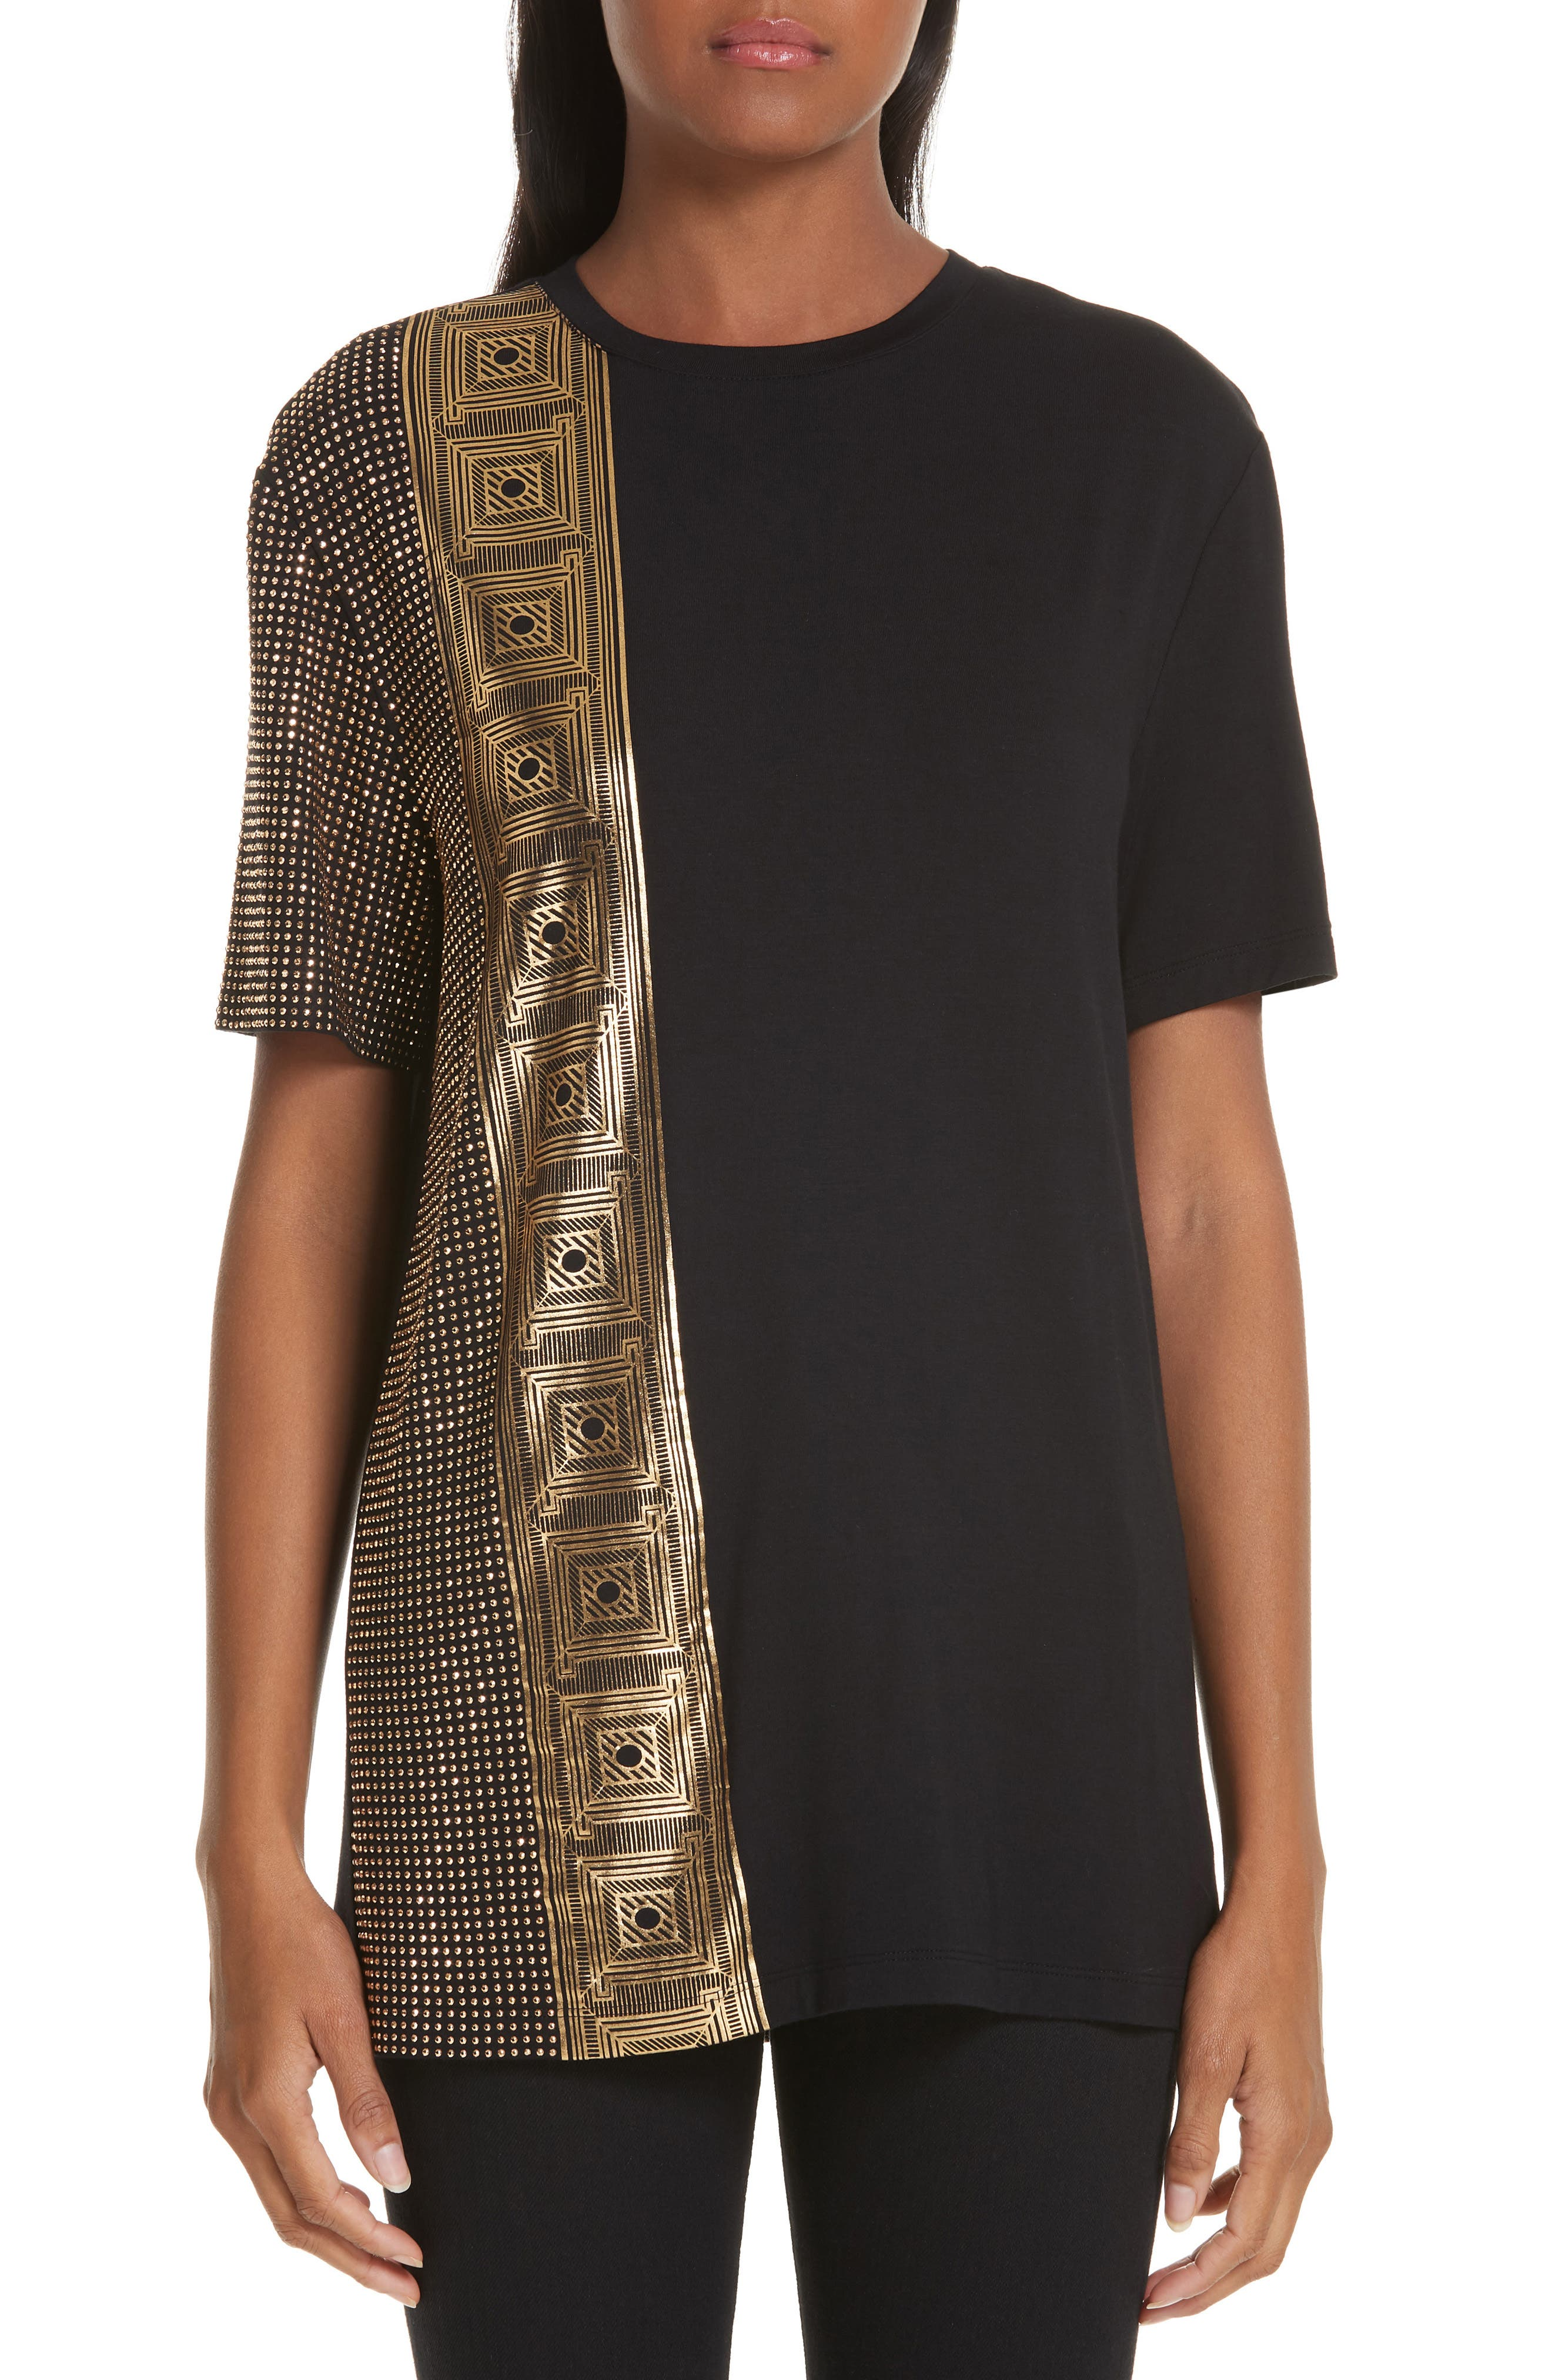 VERSACE COLLECTION, Embellished Tee, Main thumbnail 1, color, BLACK